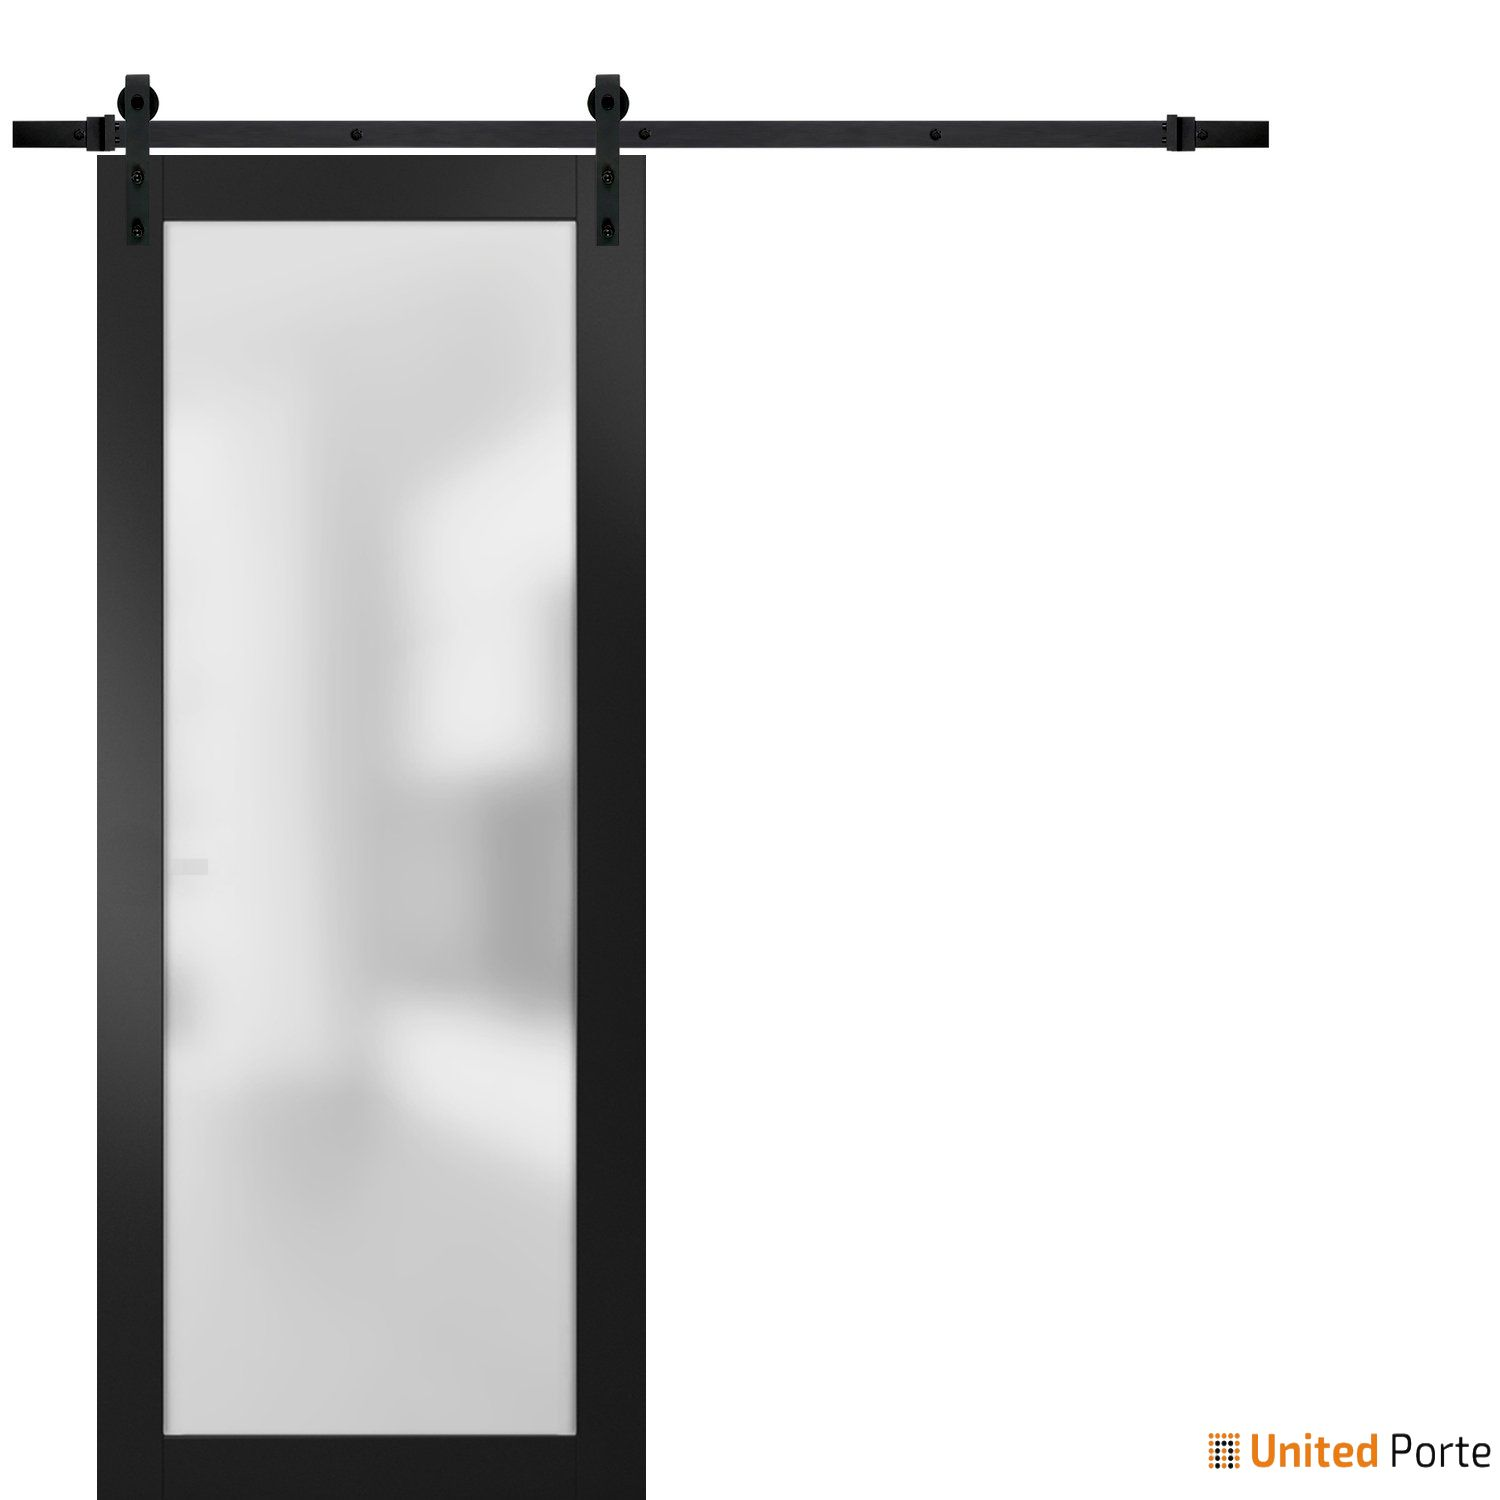 Planum 2102 Matte Black Sturdy Barn Door Frosted Tempered Glass with Black Hardware | Modern Solid Panel Interior Barn Doors